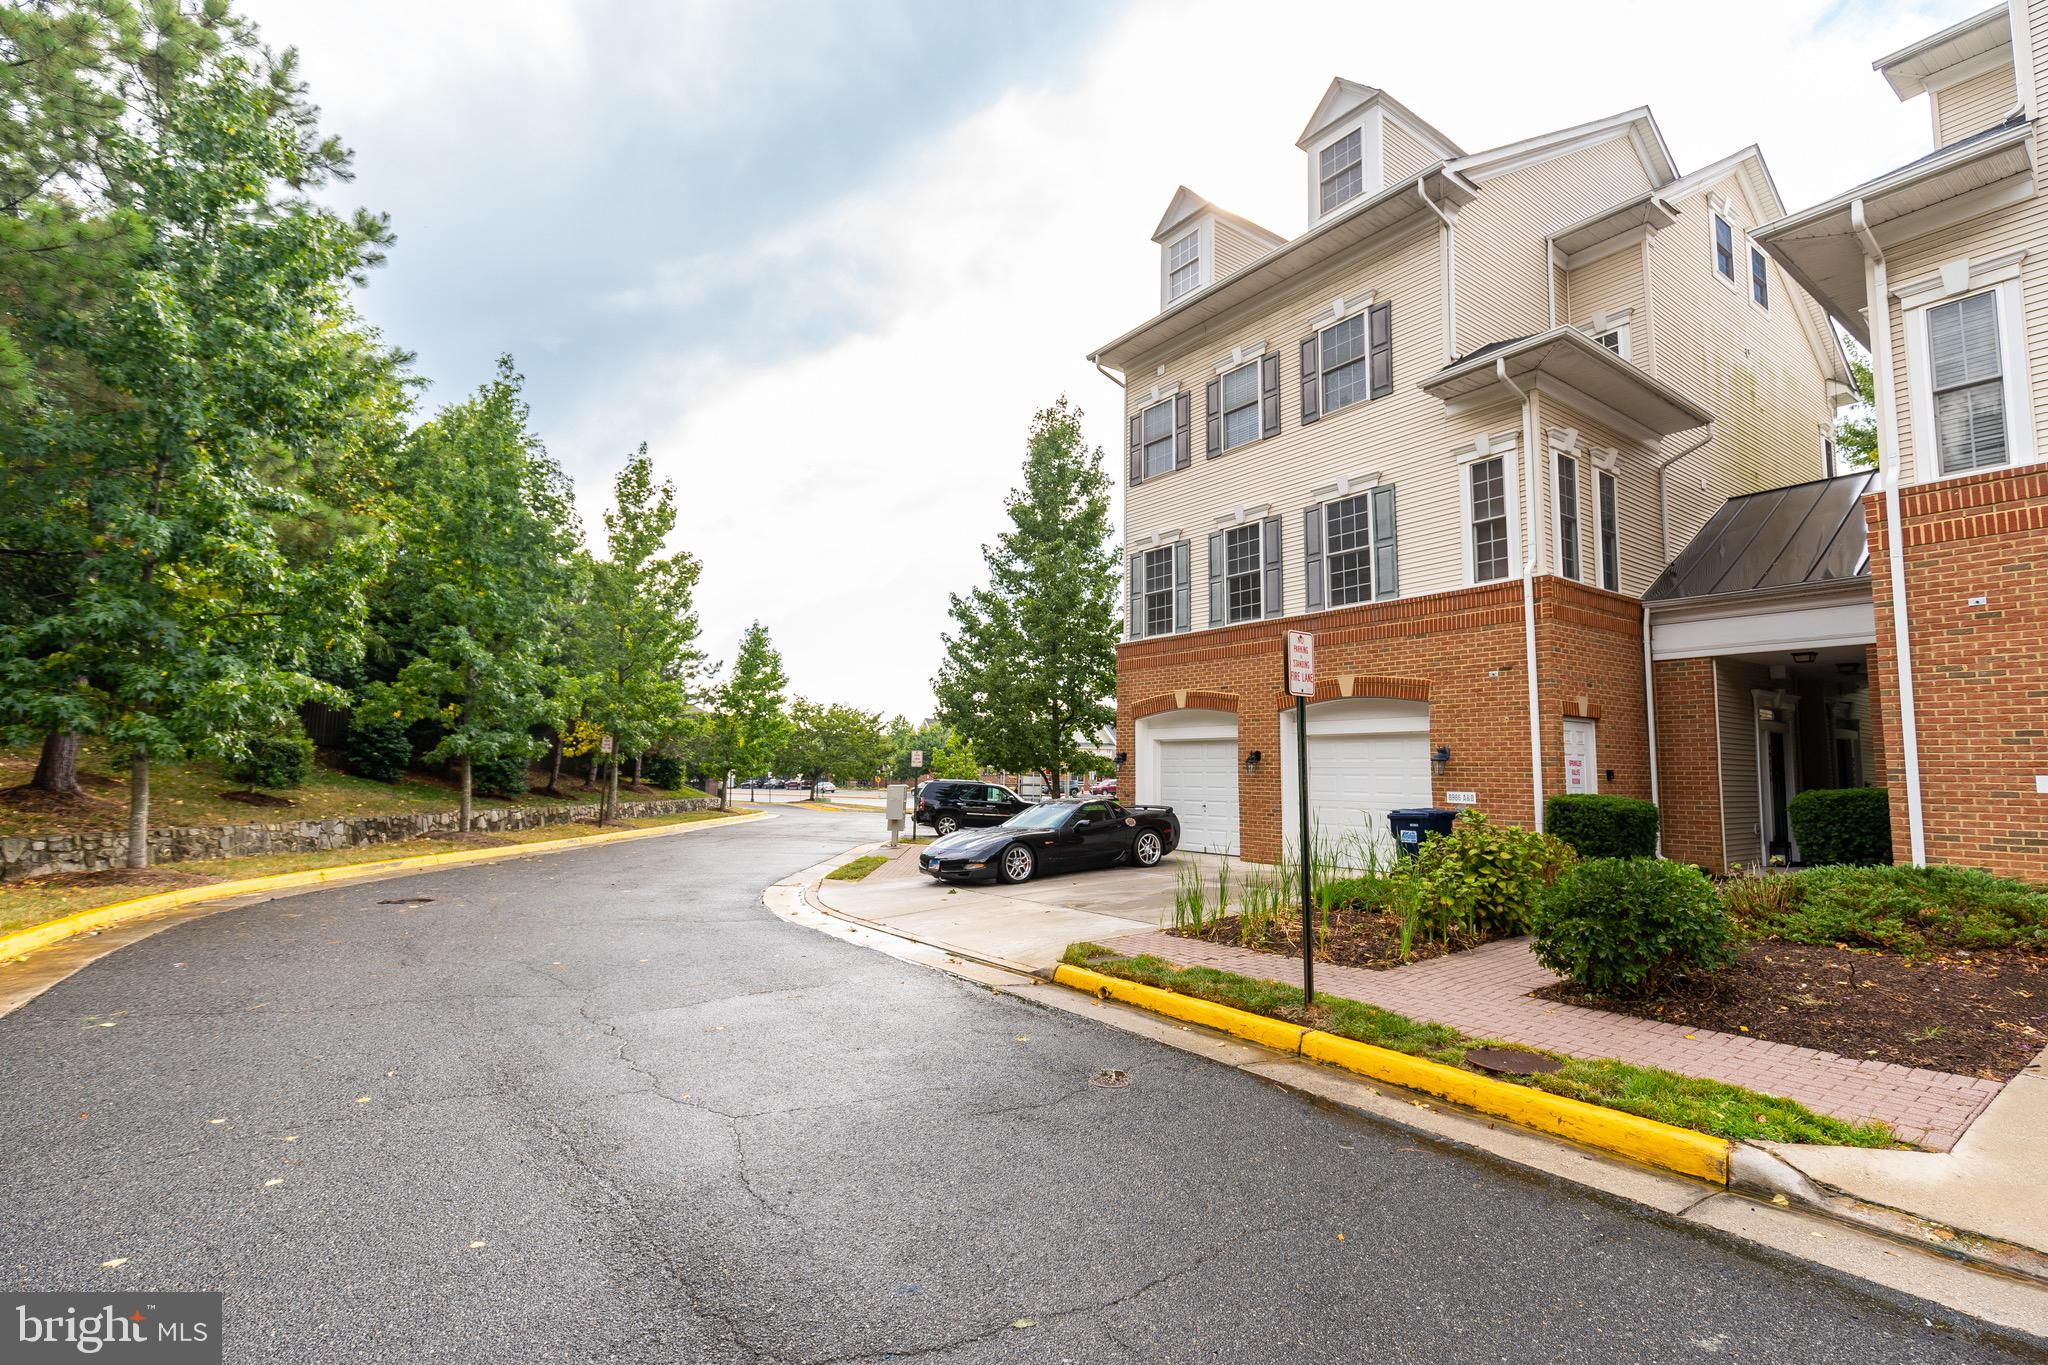 This beautiful 3 Bed + Den, 2.5 Bath, 3 level end-unit townhome is a commuter's dream; within walking distance to Lorton VRE Station and town center, with easy access to I-95! The home boasts an open plan, entry level living space with hardwood floors, high ceilings, fireplace, dedicated dining area, and gourmet kitchen, featuring granite countertops, stainless steel appliance suite, and ample storage. The master bedroom features ensuite bath with, double vanity, two-person soaking tub, and separate shower. Two additional large bedrooms and den occupy the top floor with excellent light and storage. Side by side, front loading washer and dryer in unit, plus attached garage with room for additional parking in the driveway!